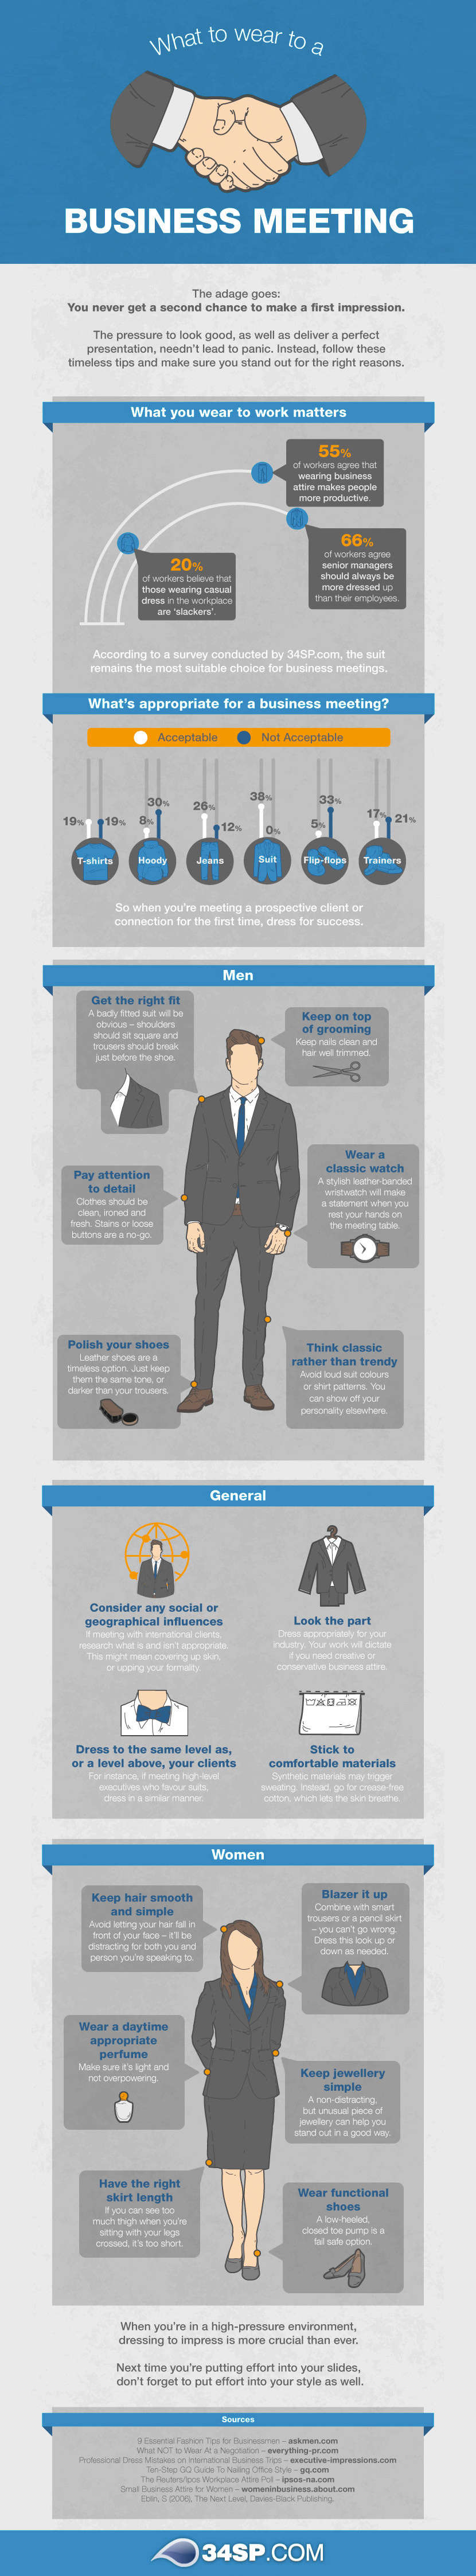 What to Wear to a Business Meeting job interview success tips tutorial